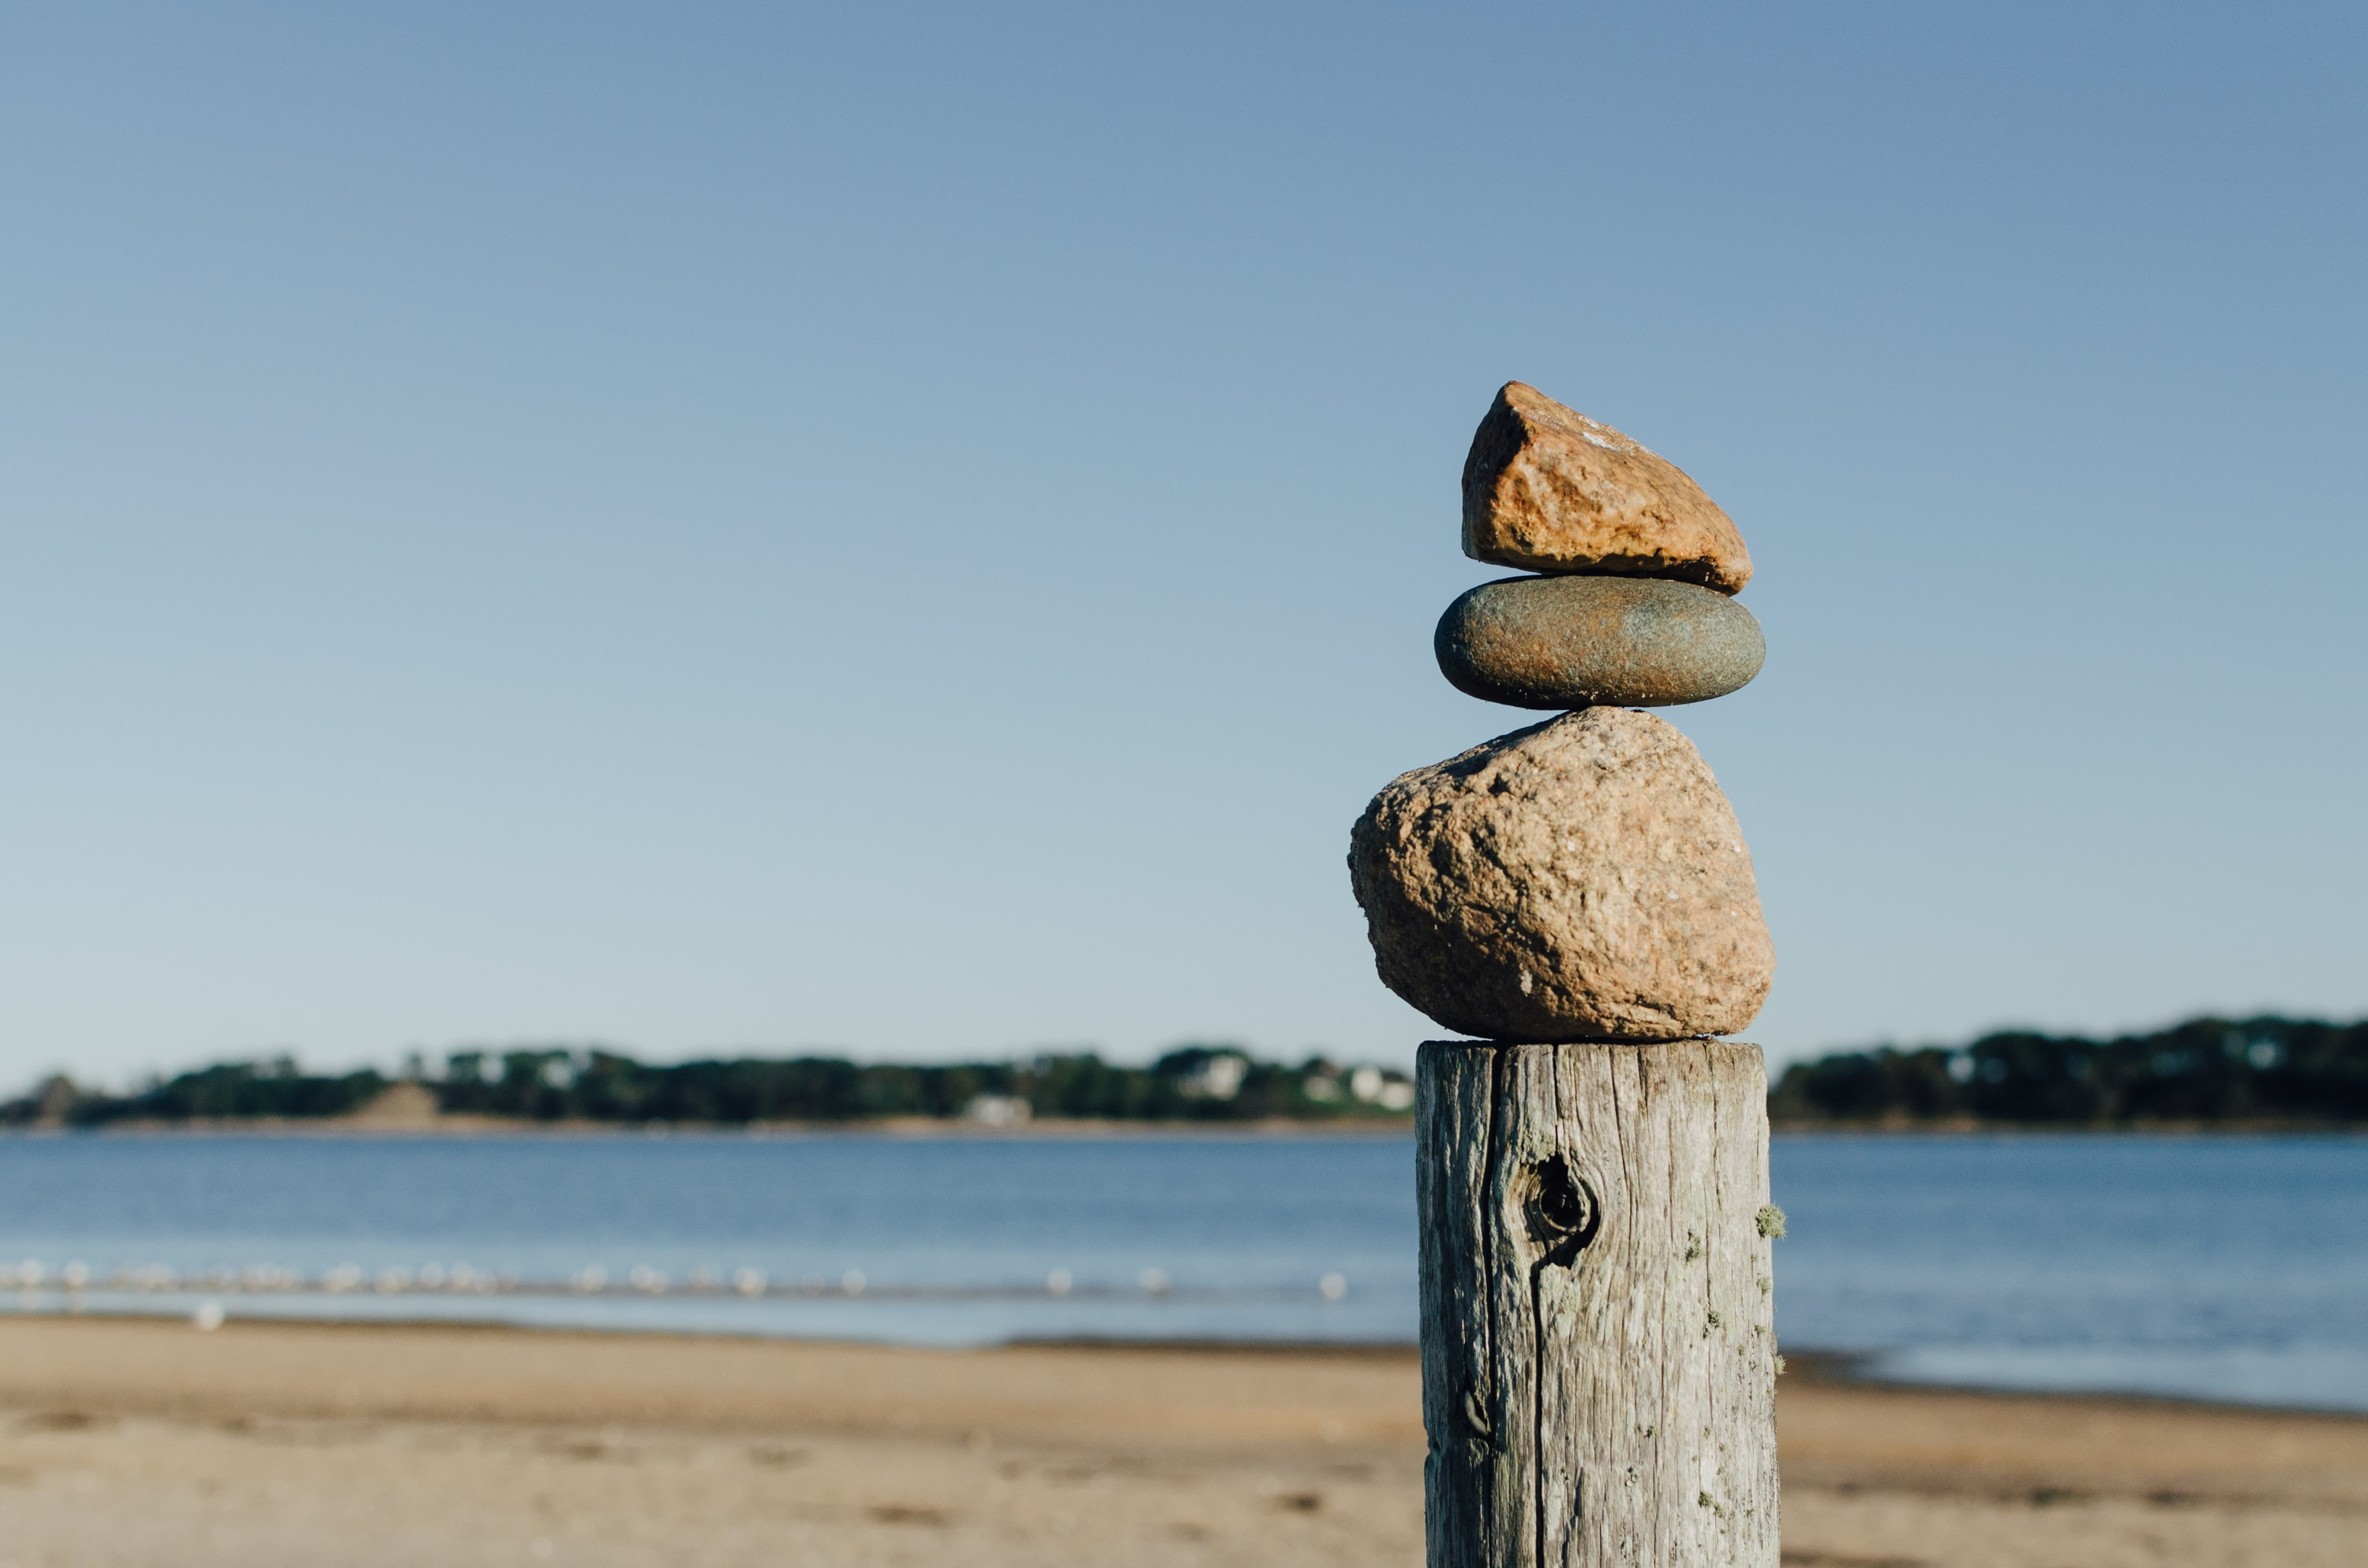 rock balancing on wooden post near body of water